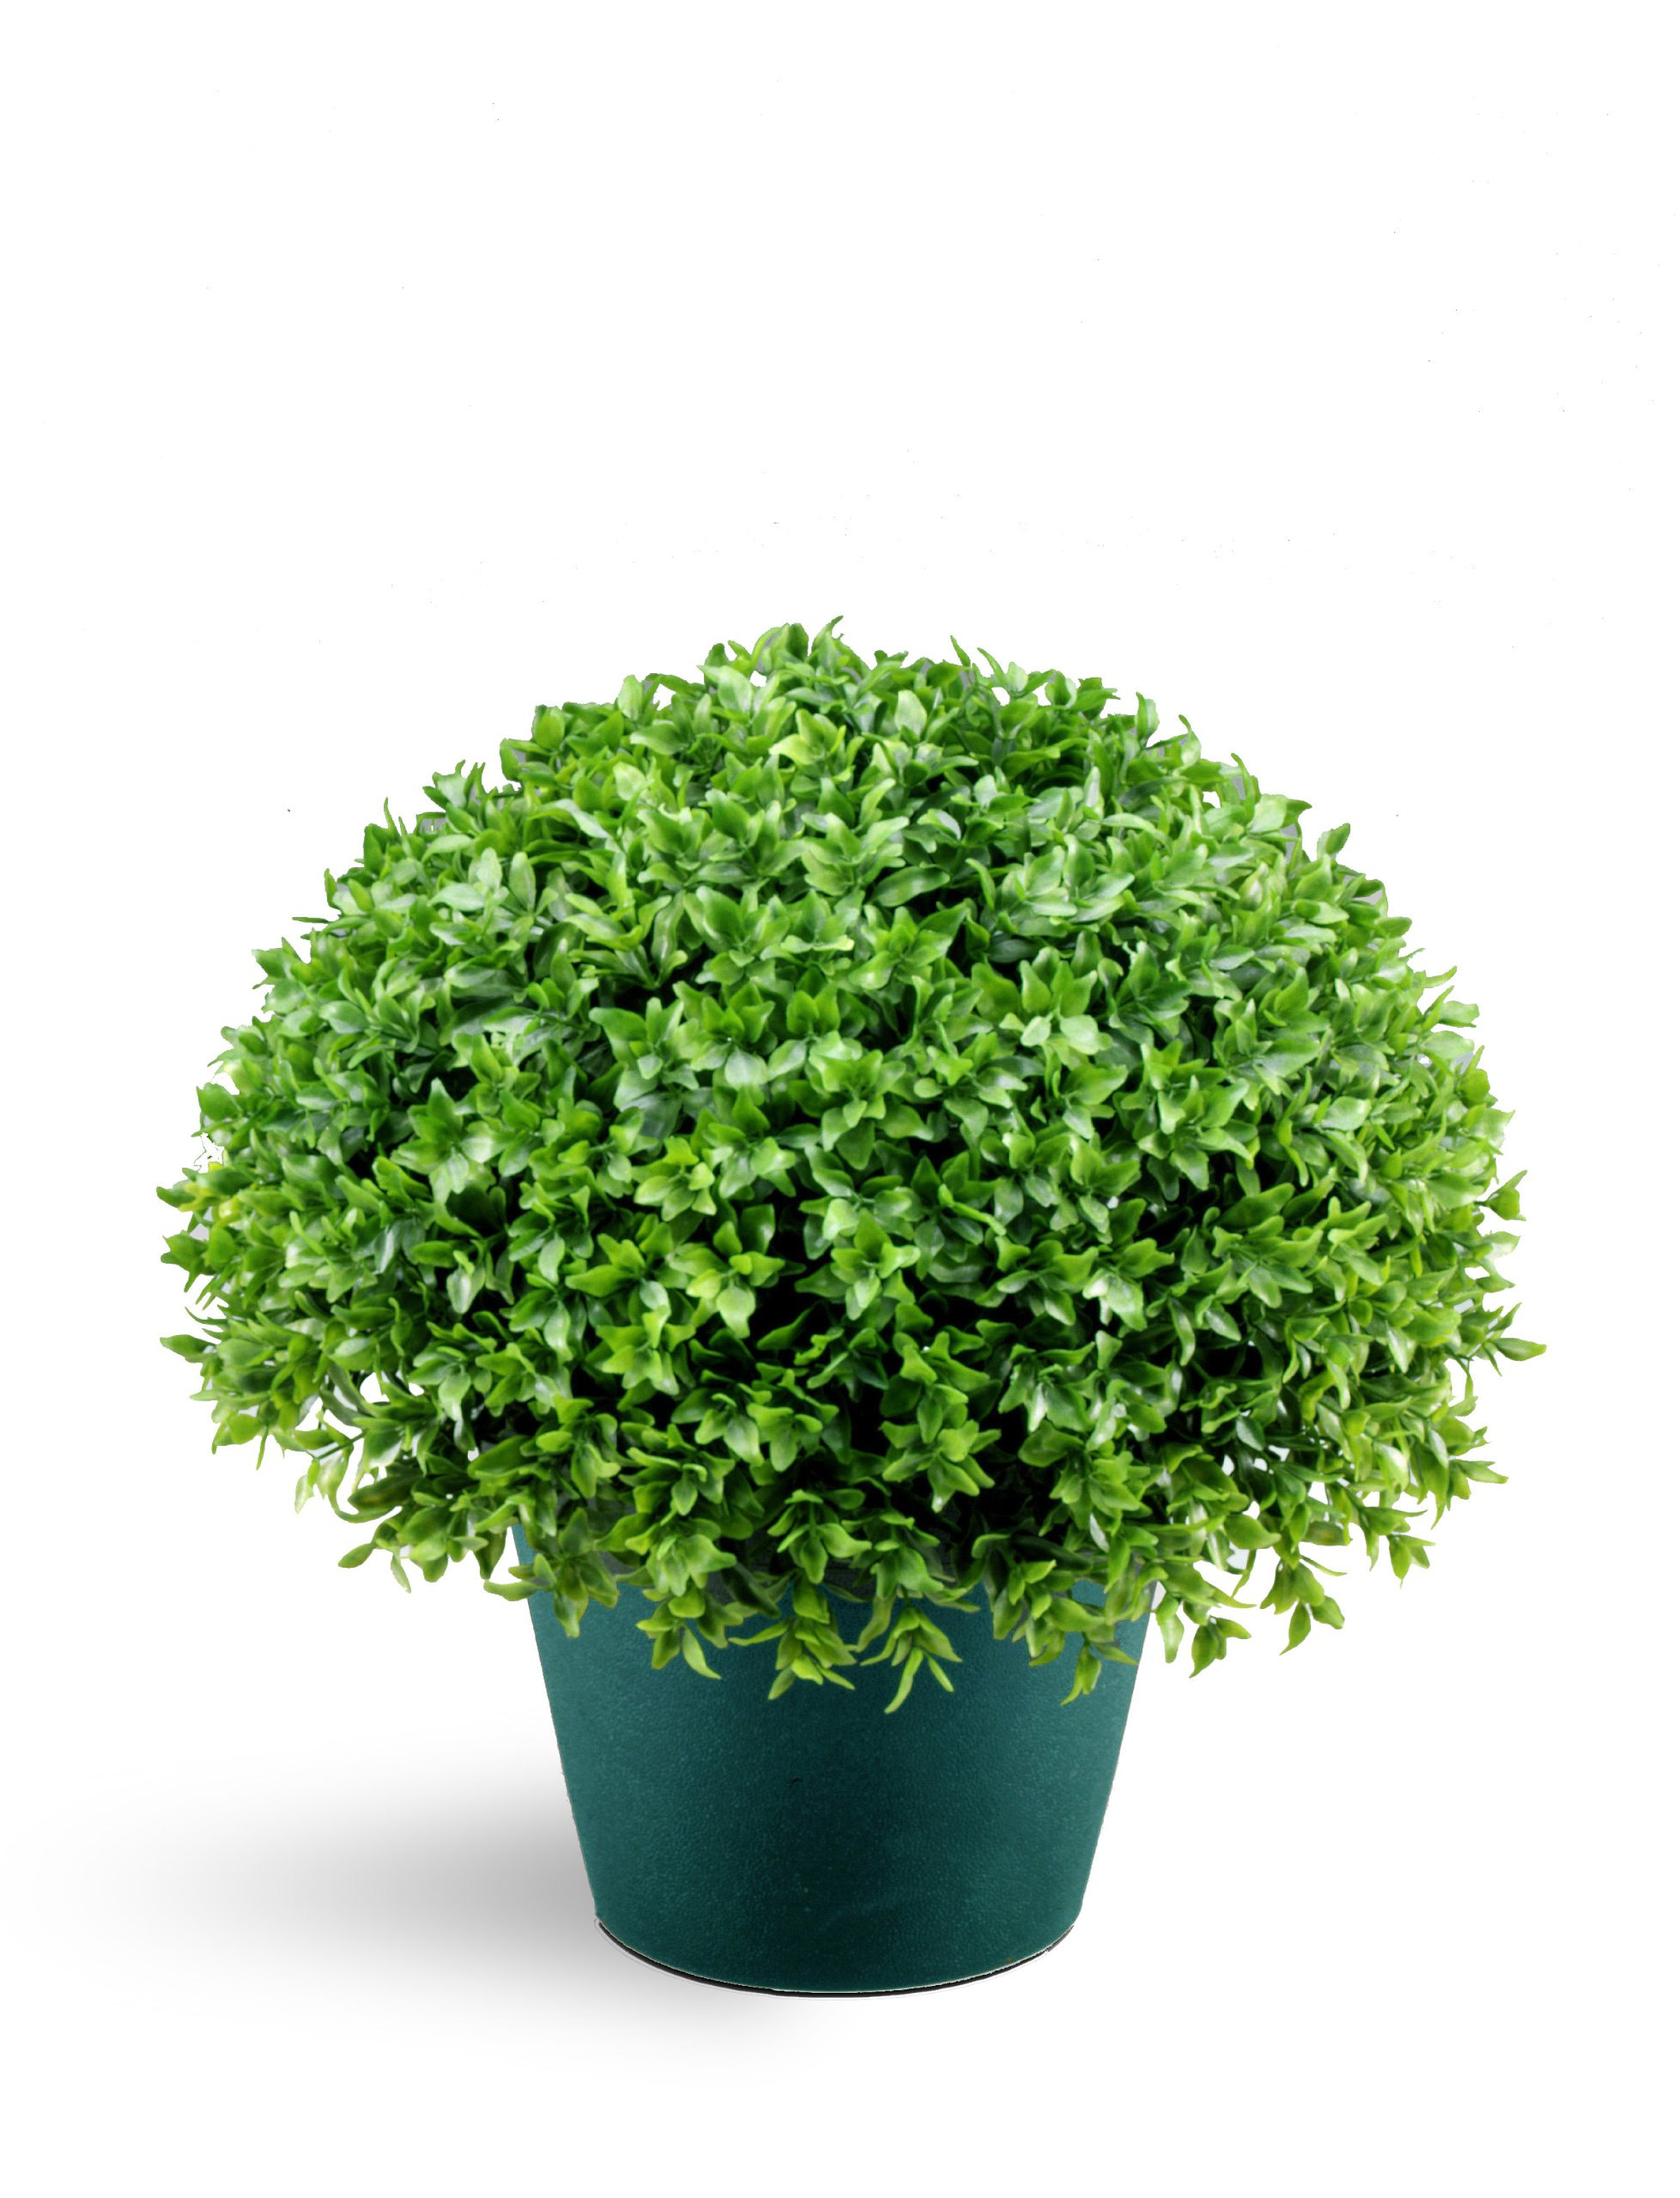 National Tree 13 Inch Globe Japanese Holly Bush in Dark Green Round Plastic Pot (LJB4-13-1)